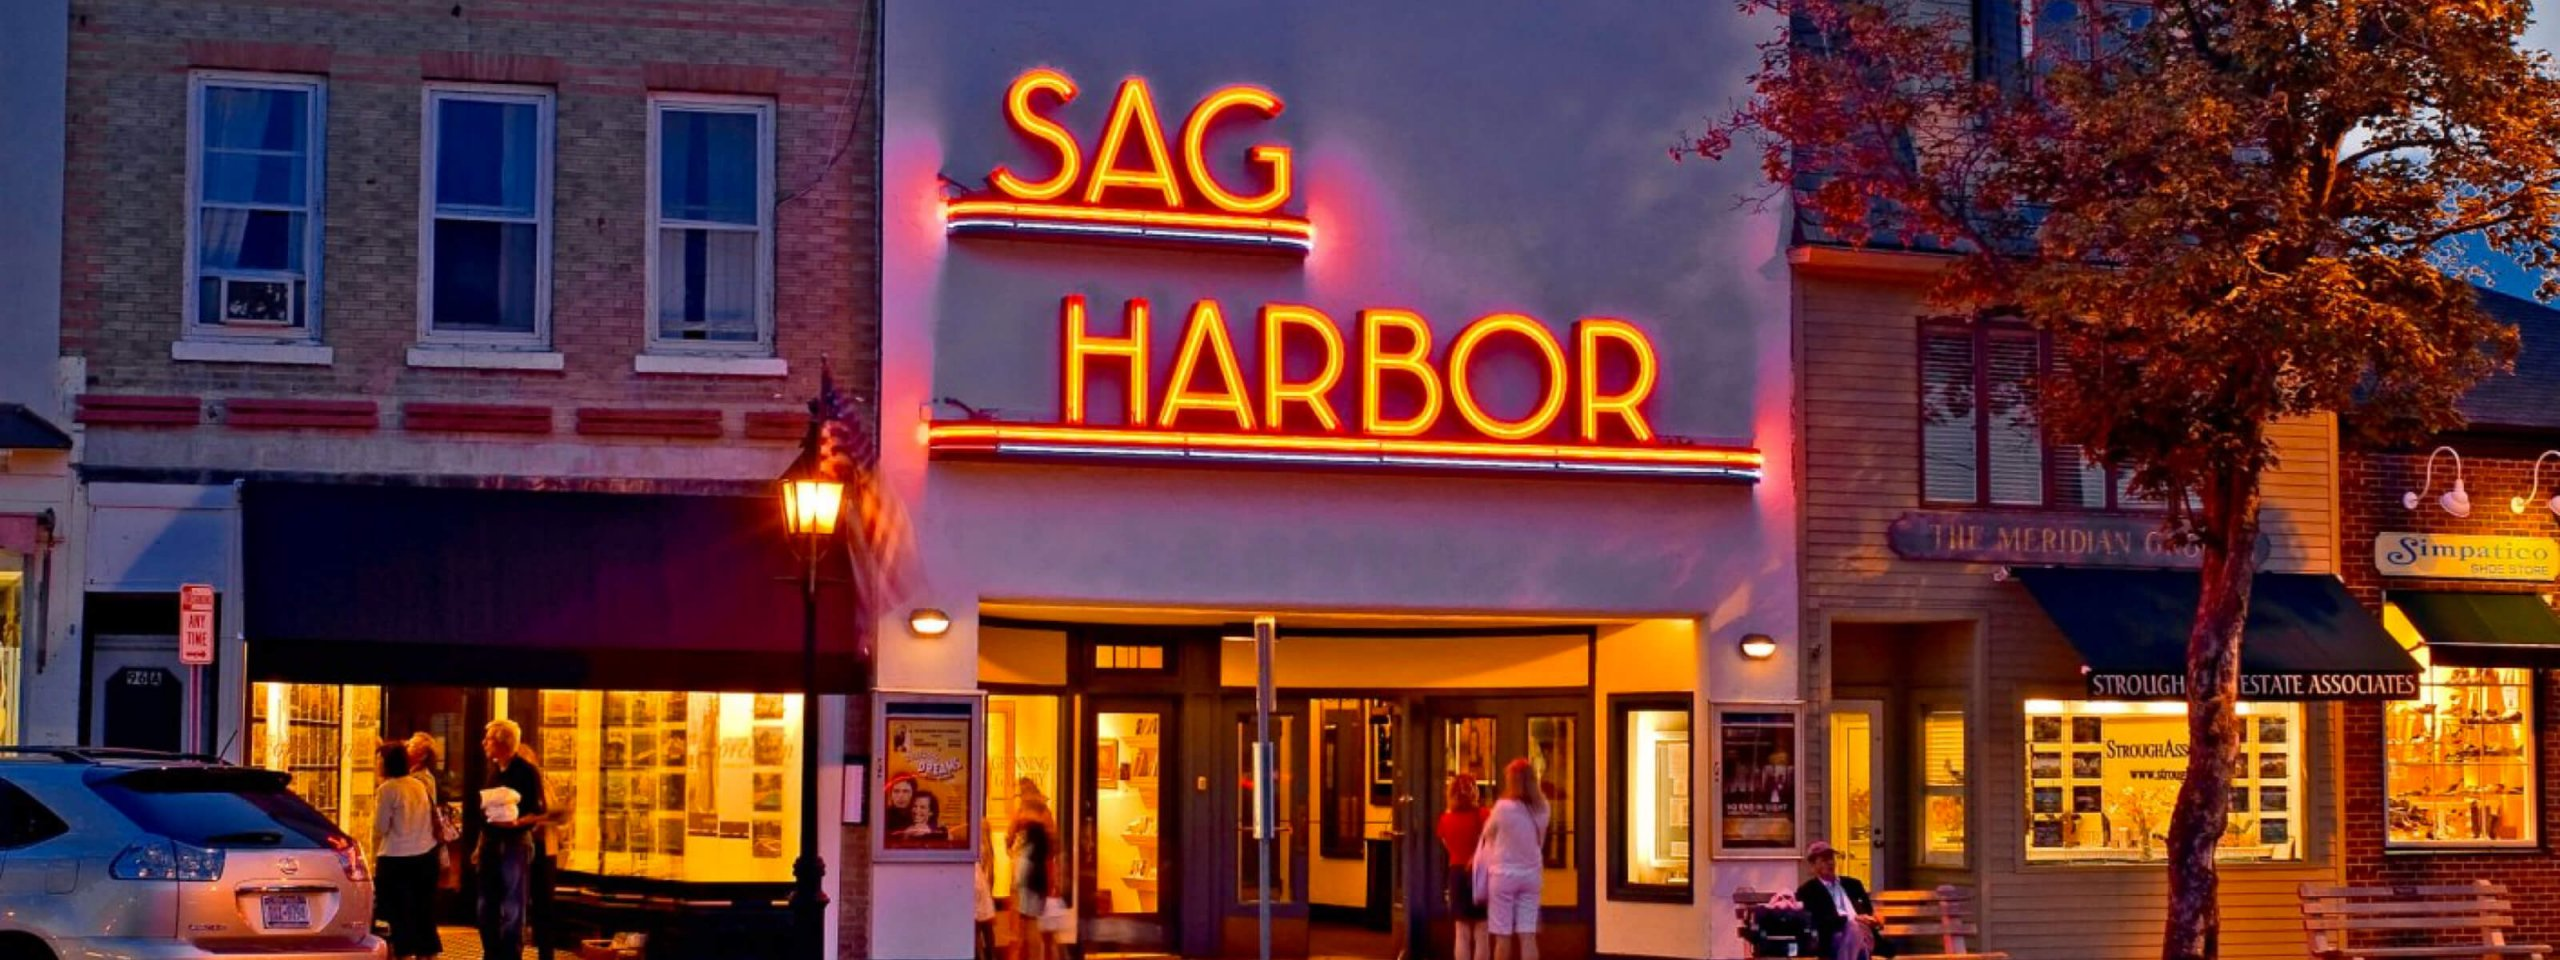 YachtLife's Suggested 7-day Itinerary - Sag Harbor